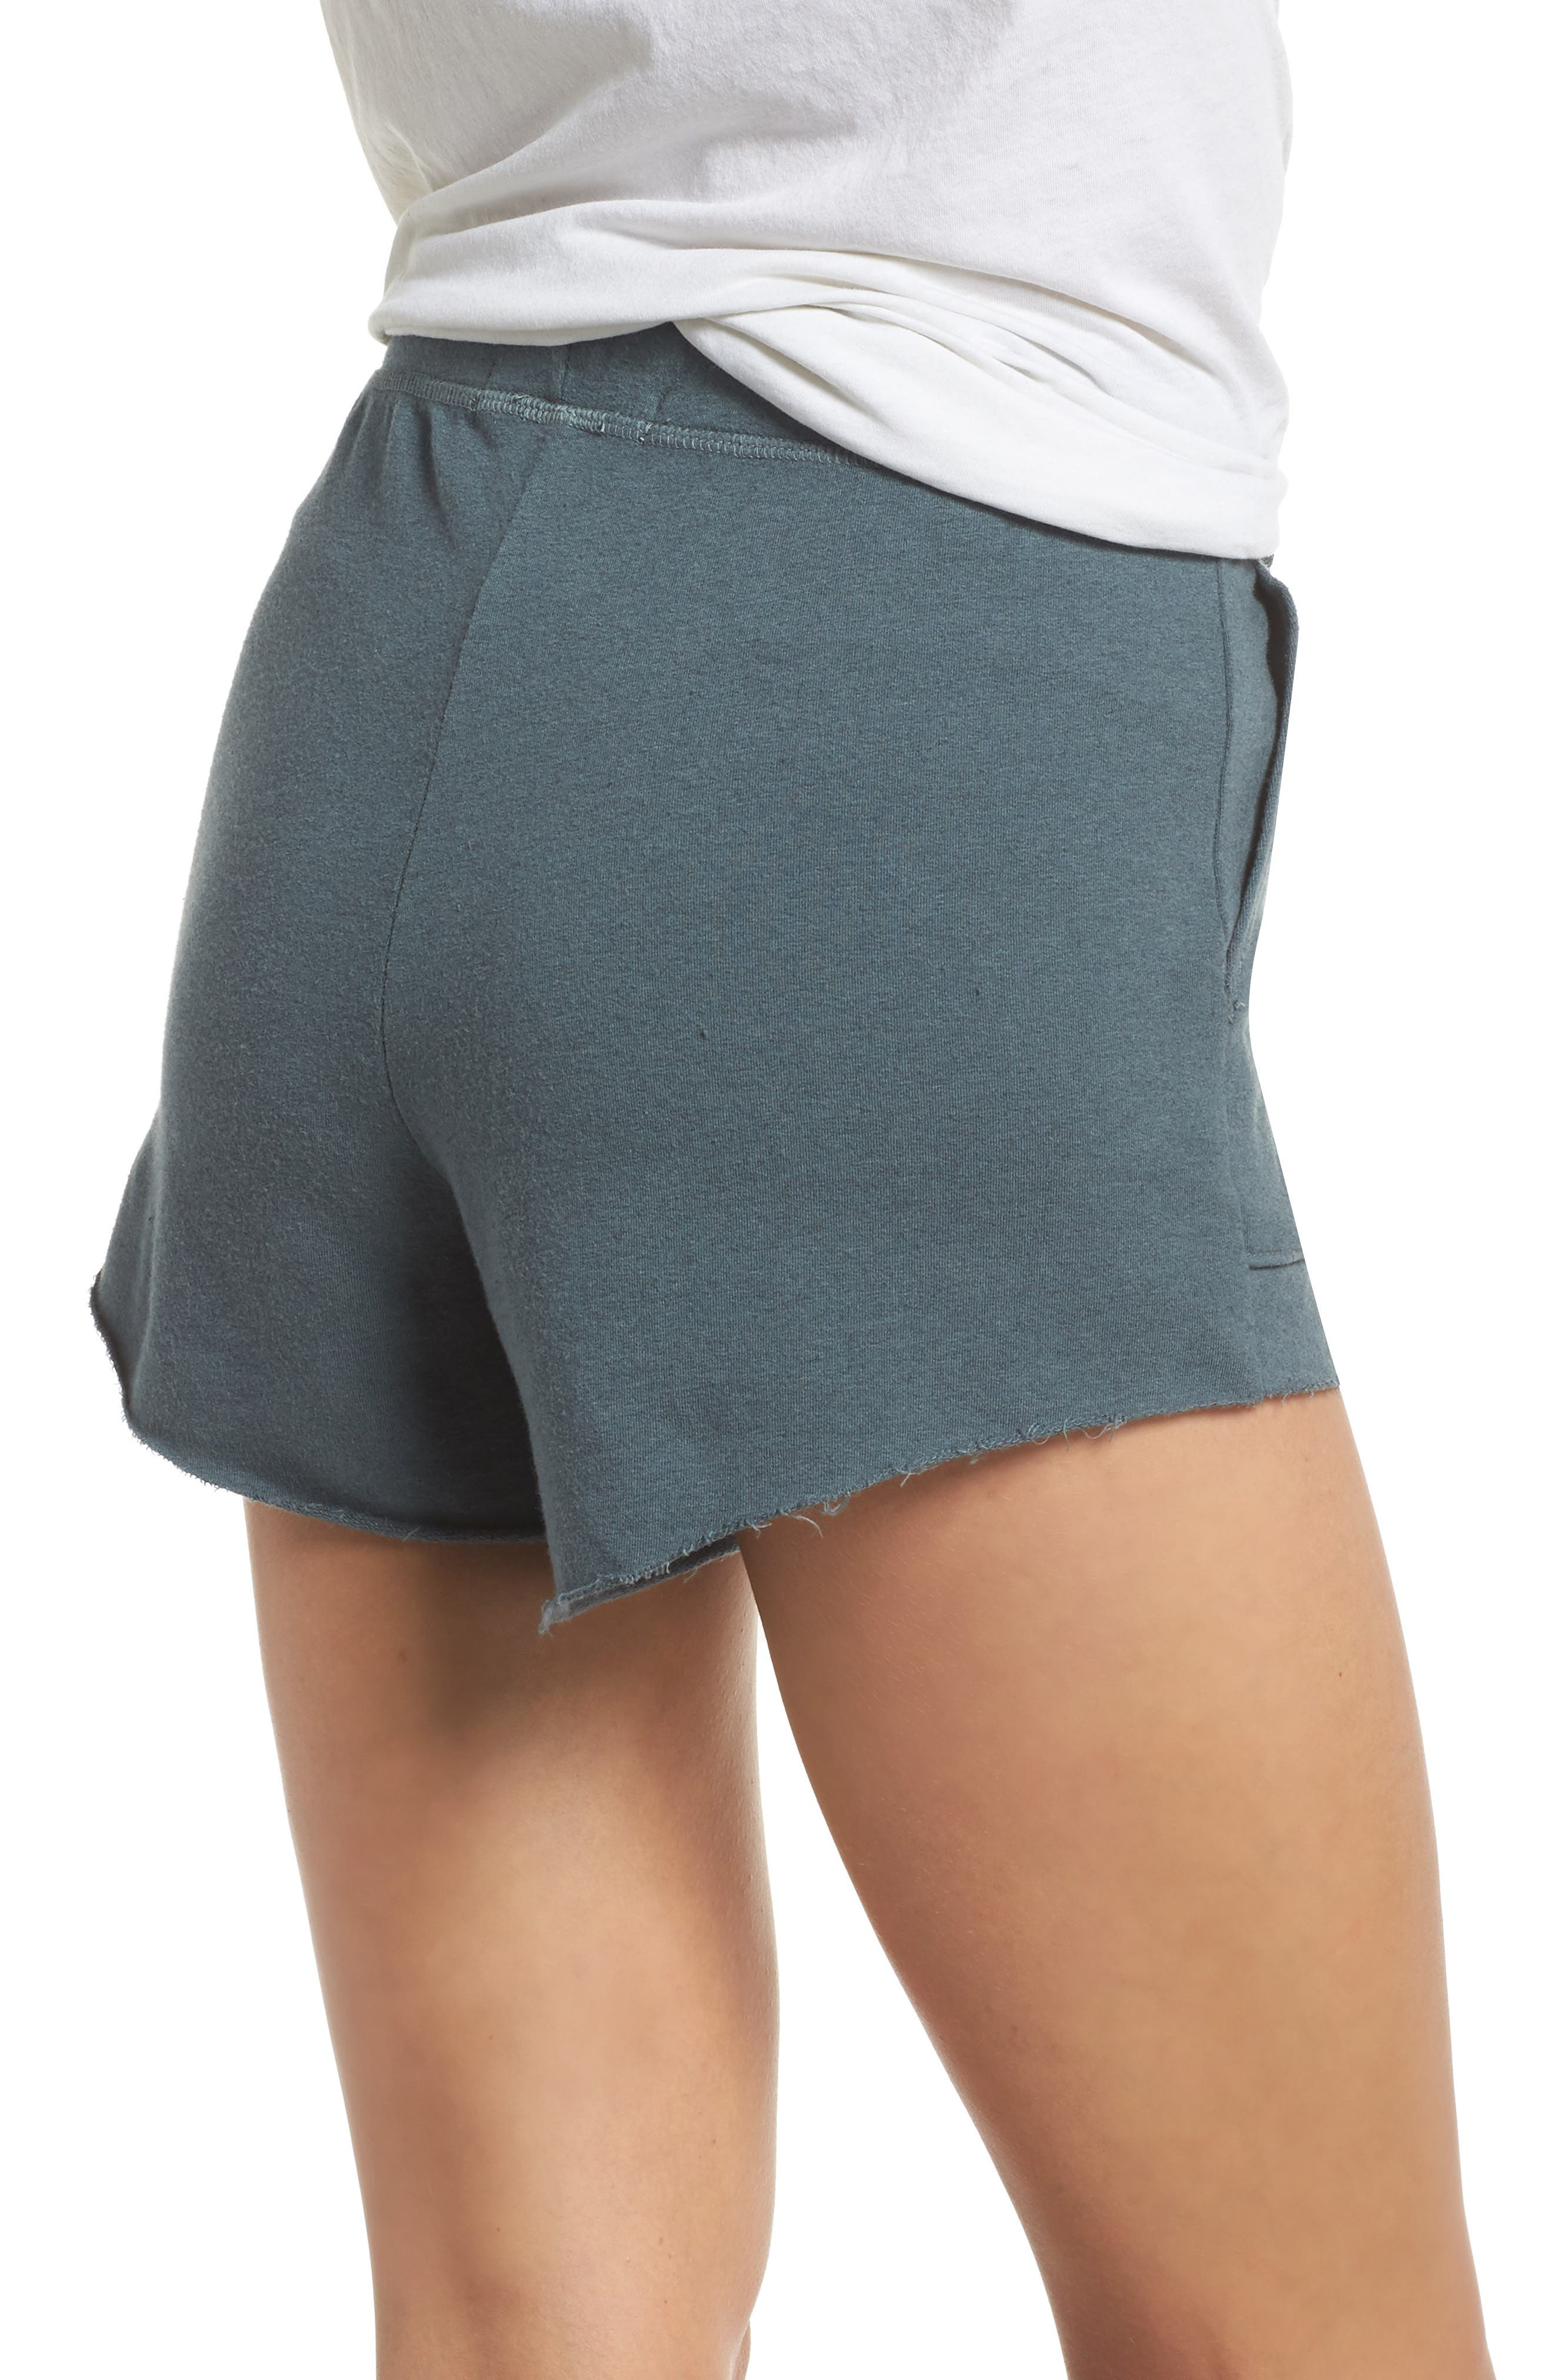 Raw Cut Lounge Shorts,                             Alternate thumbnail 2, color,                             021